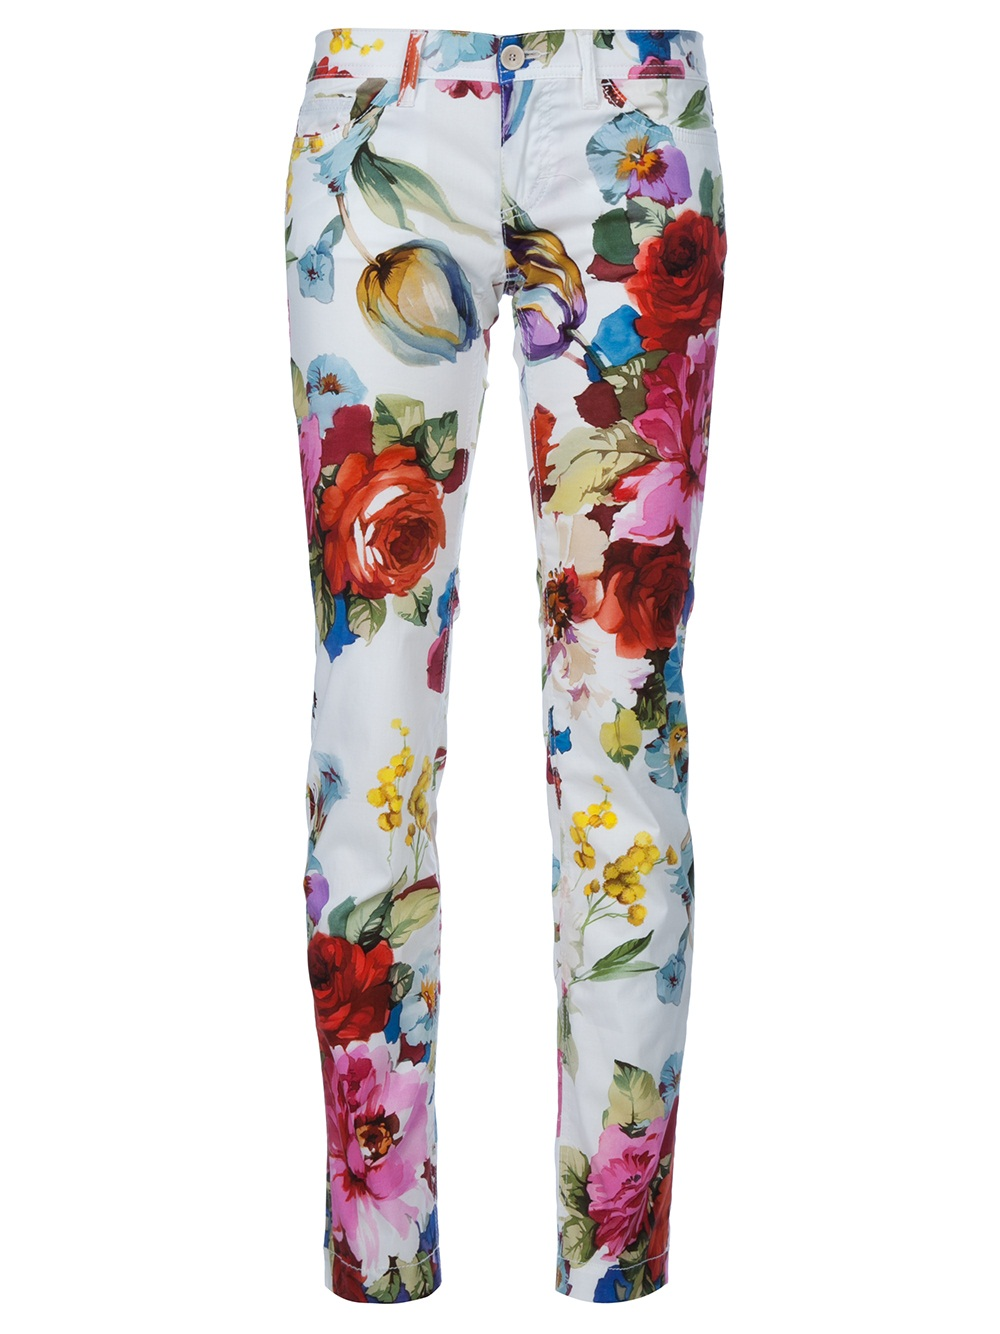 I Ve Fallen In Love With A Fad Floral Pants Lady Like I